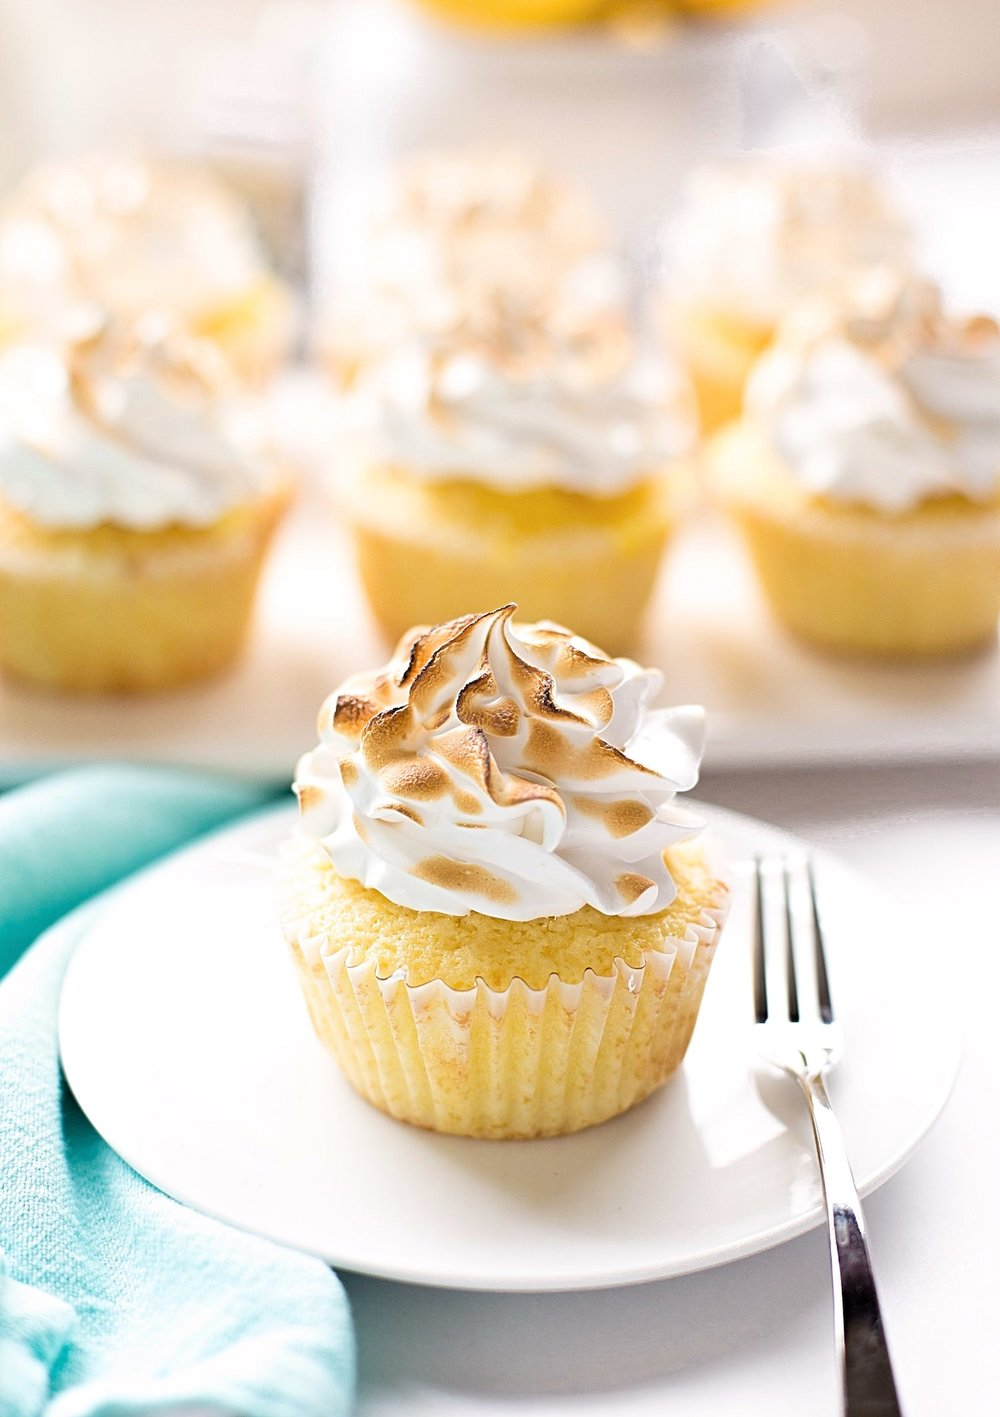 Fluffy Lemon Meringue Cupcakes: soft, fluffy lemon cupcakes filled with a tart lemon curd and topped with a sweet meringue frosting. | TrufflesandTrends.com